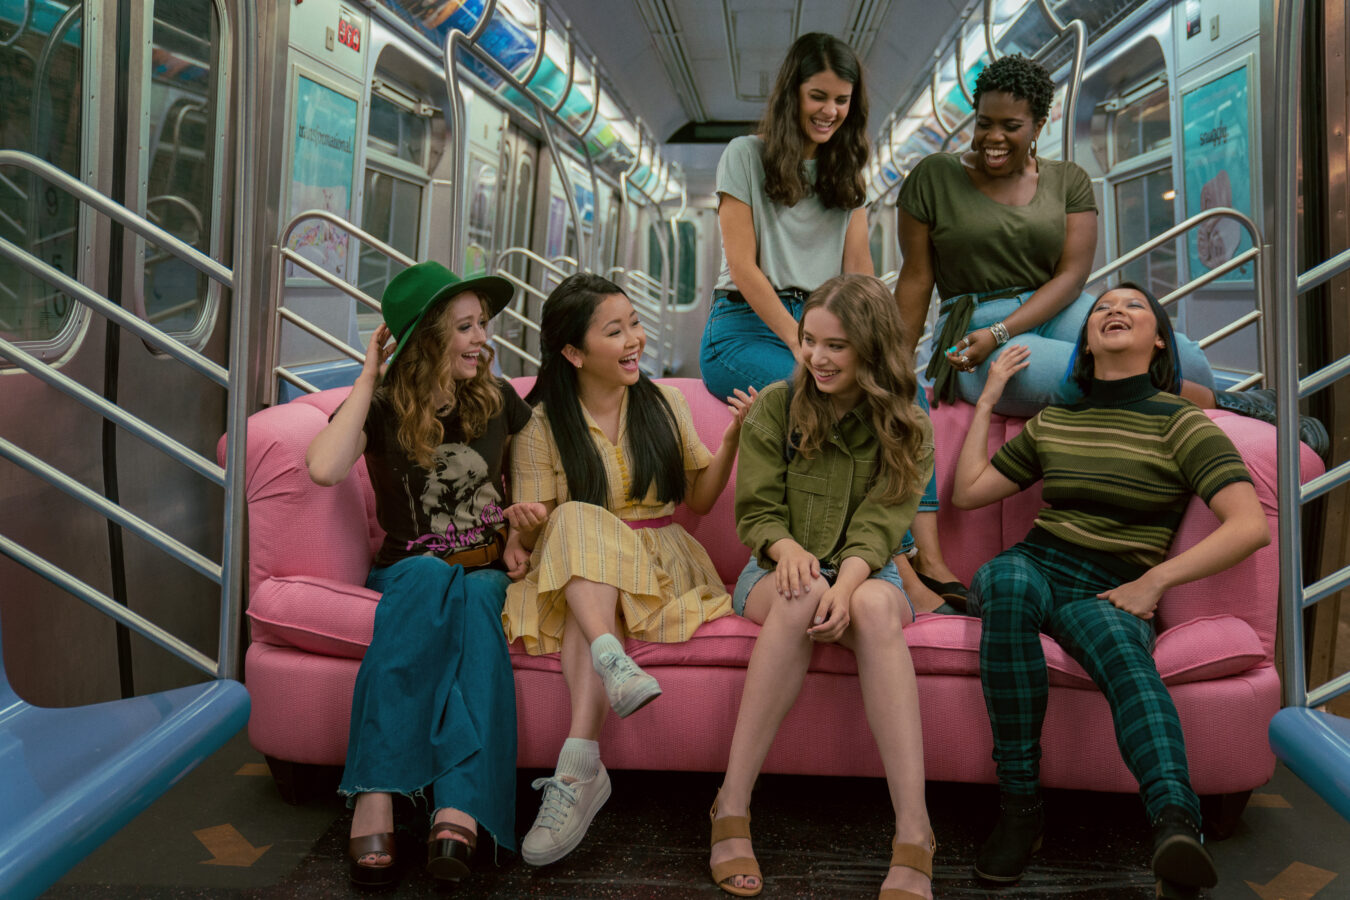 Lara Jean and friends on a pink couch in the NYC subway in To All the Boys 3.